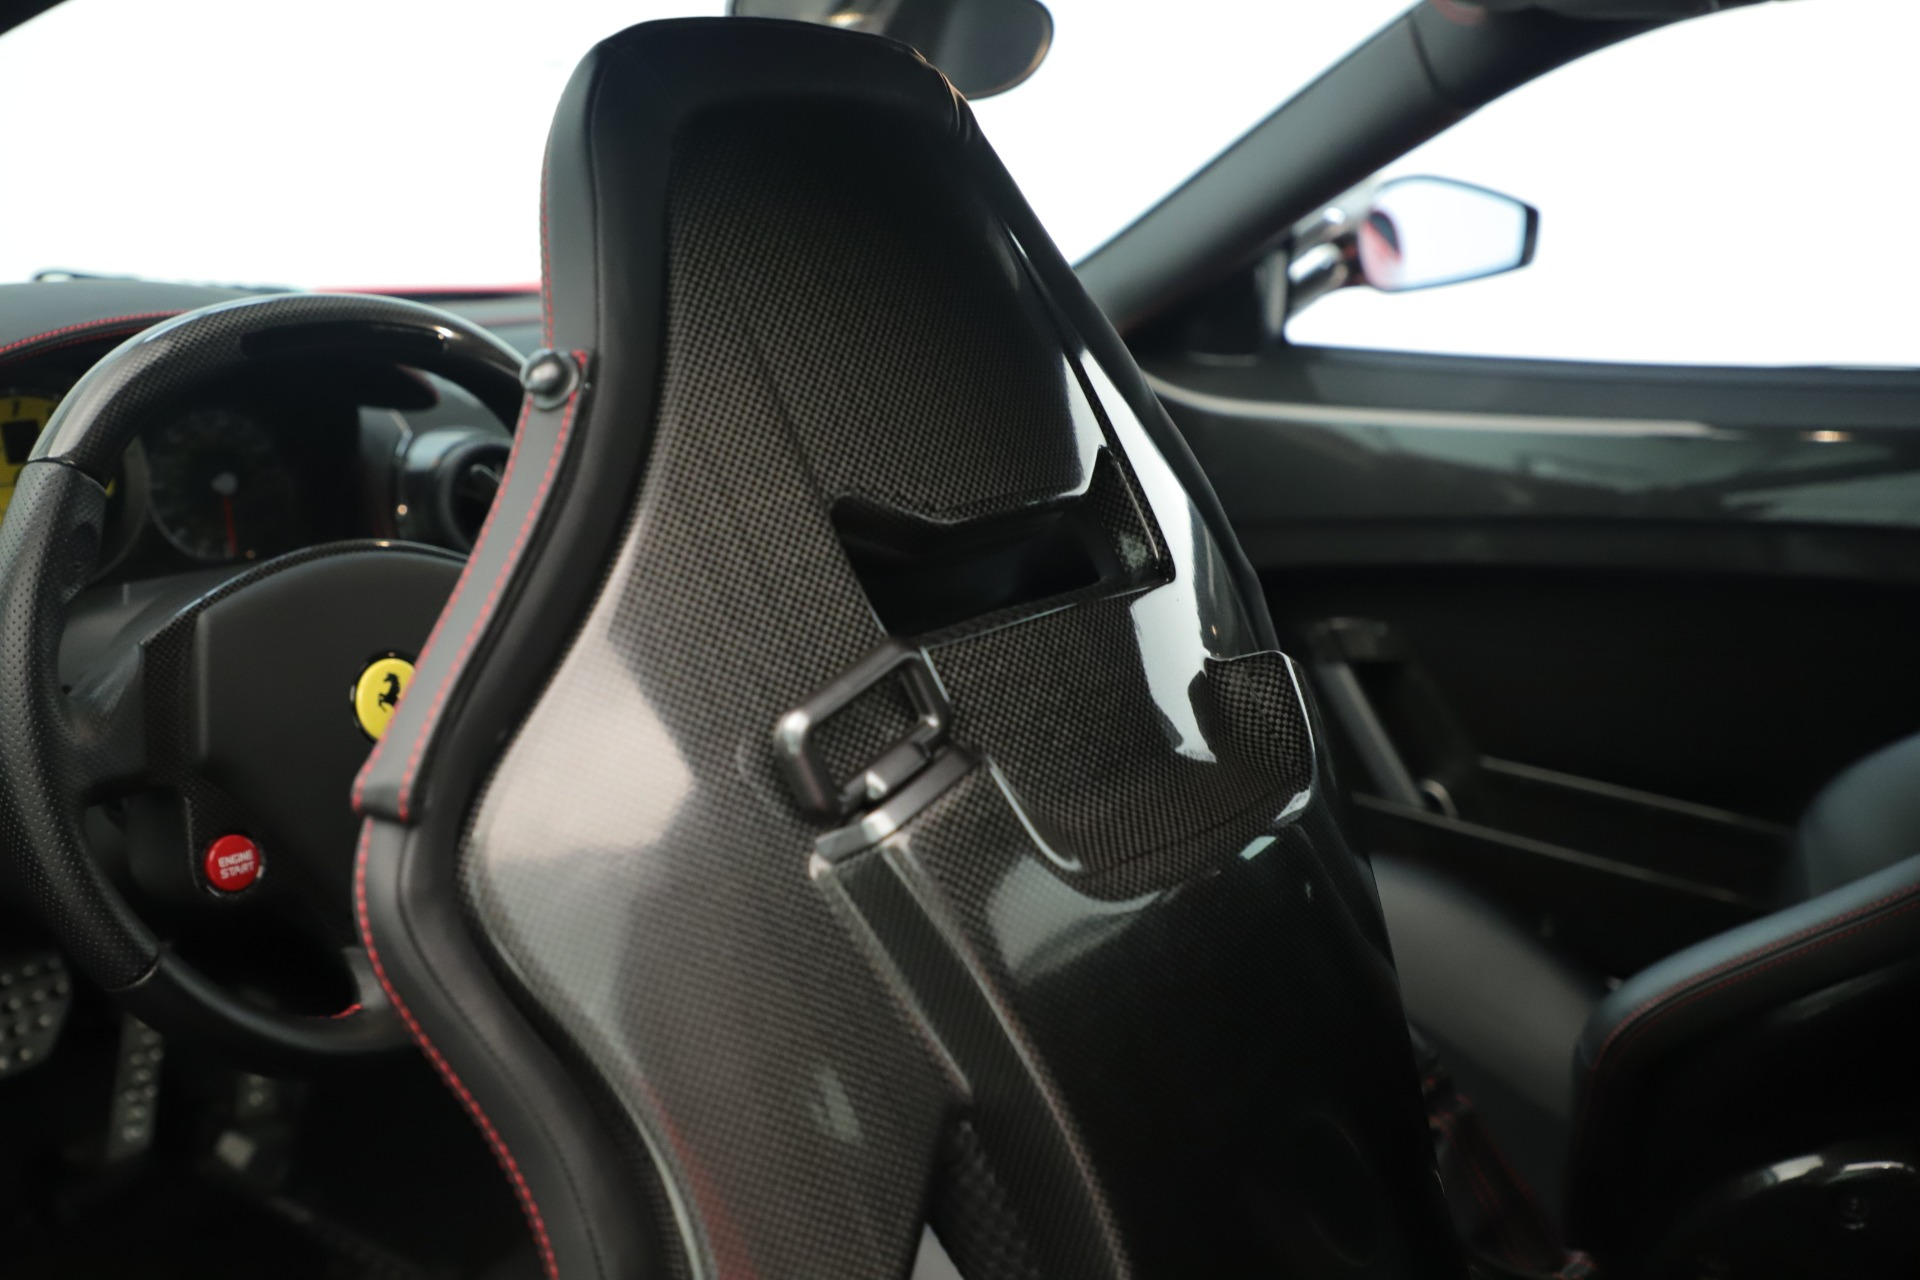 Used 2008 Ferrari F430 Scuderia For Sale In Greenwich, CT 3381_p22